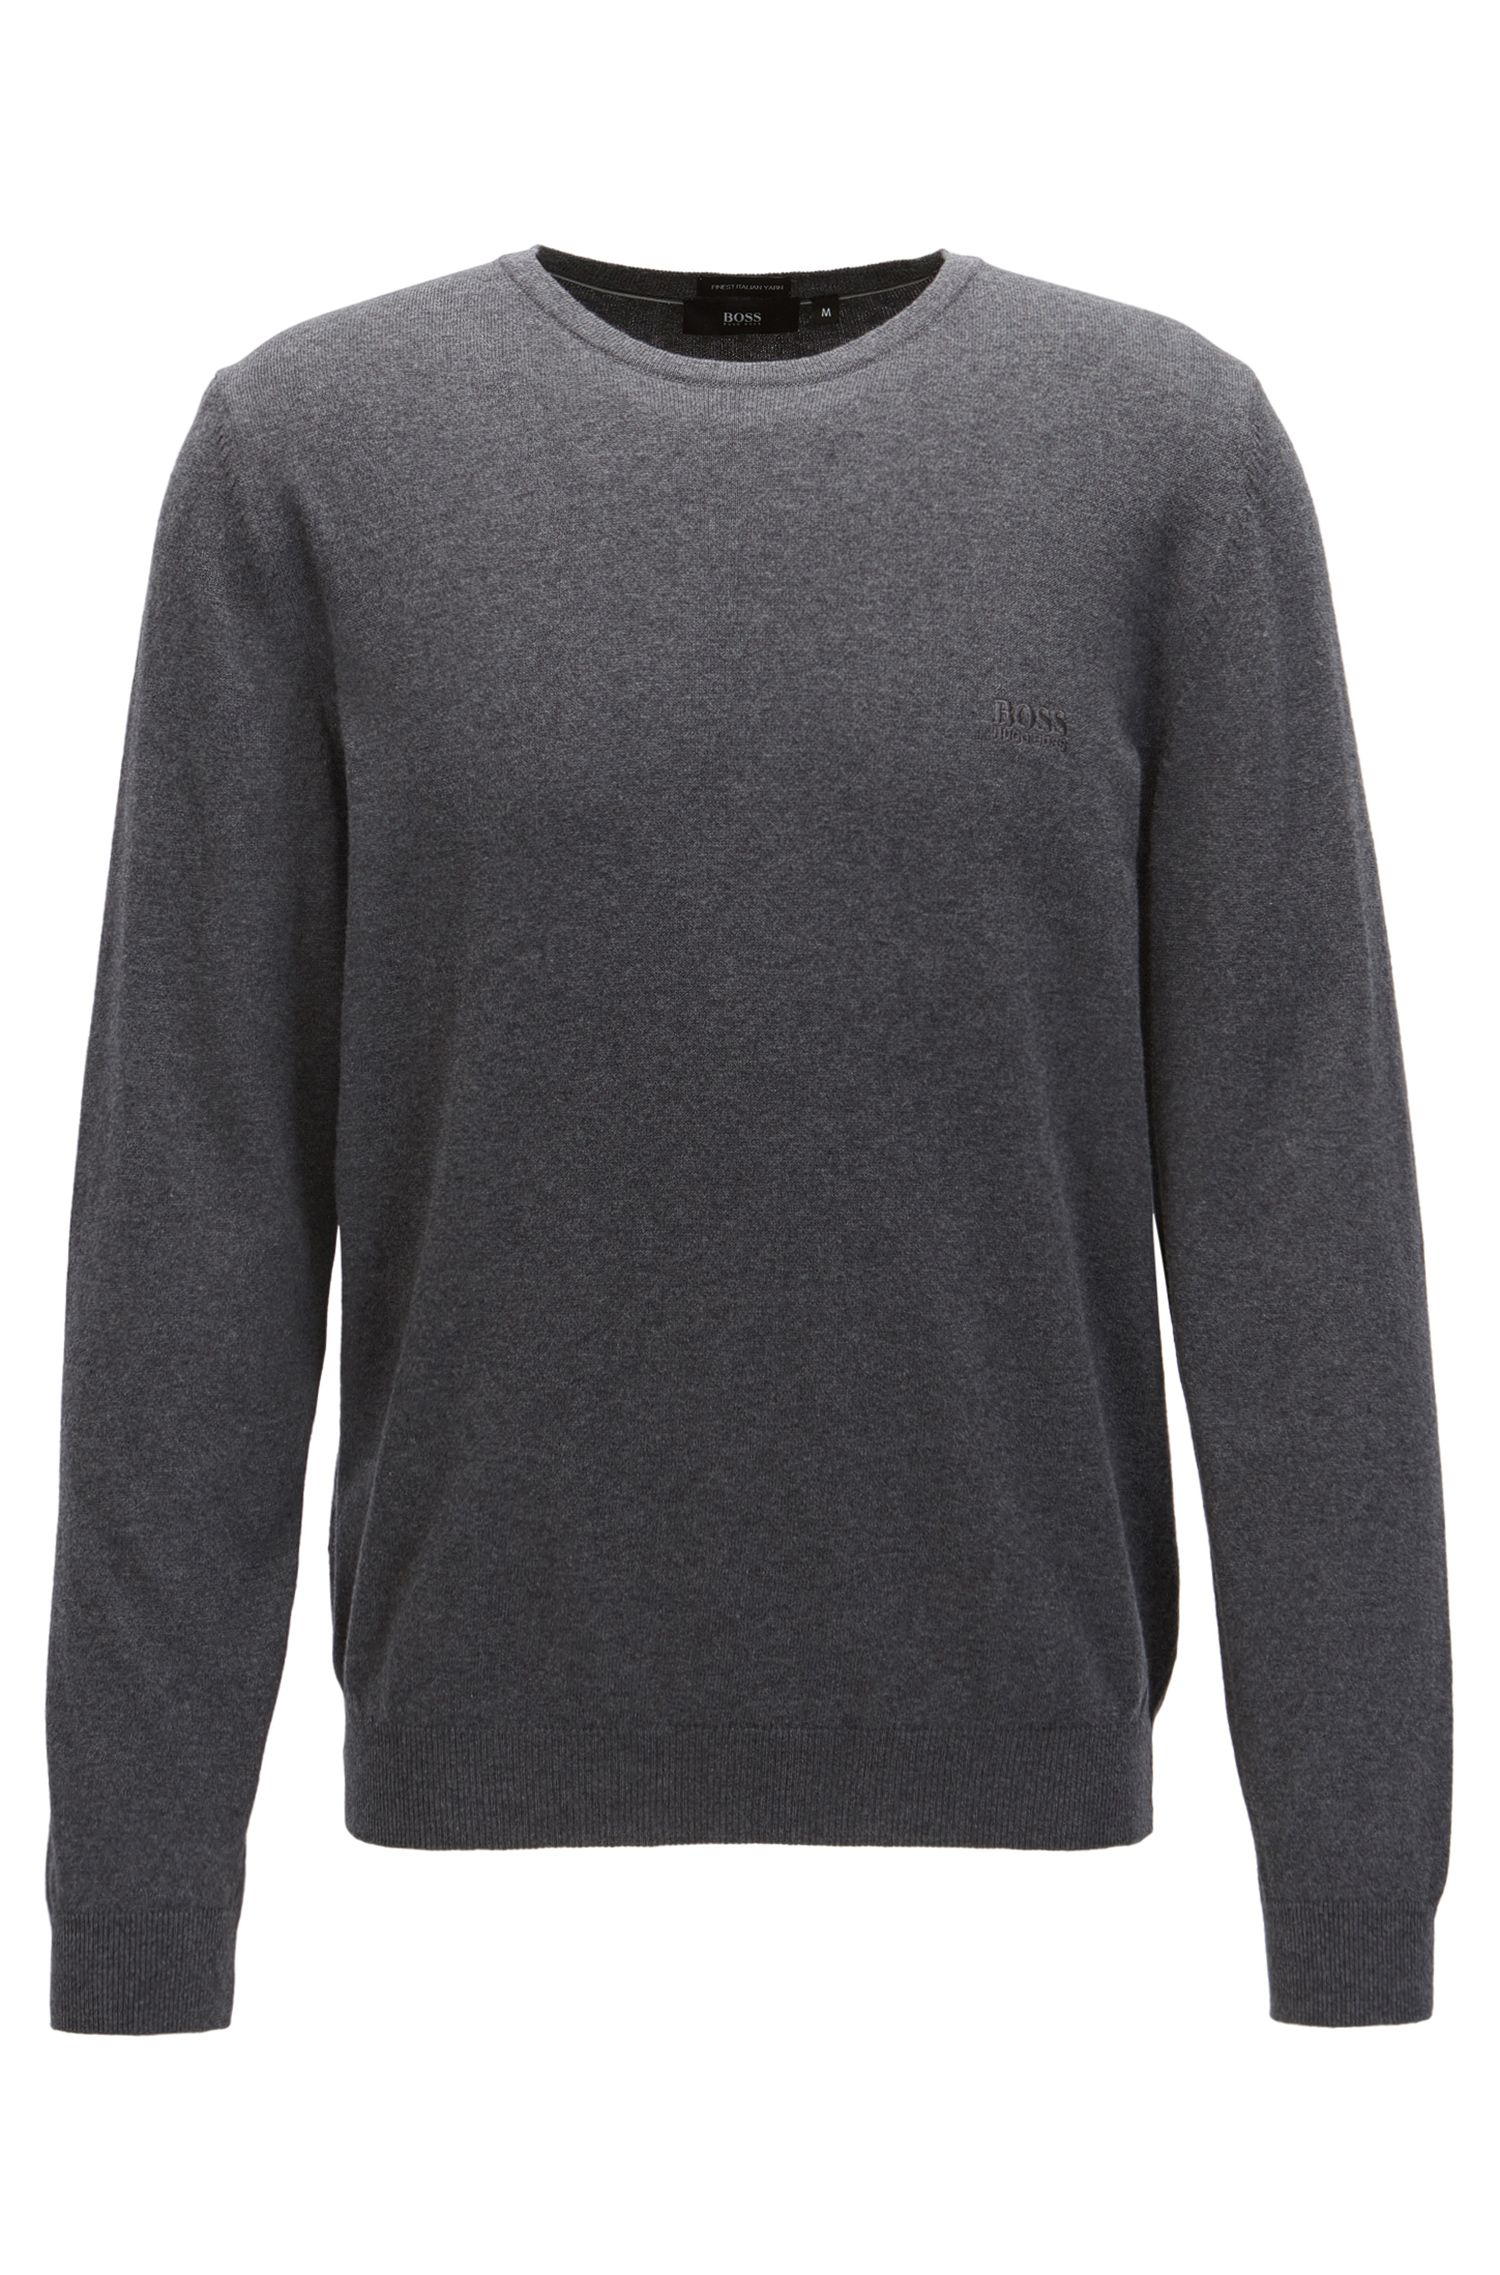 Crew-neck cotton sweater with logo embroidery, Grey